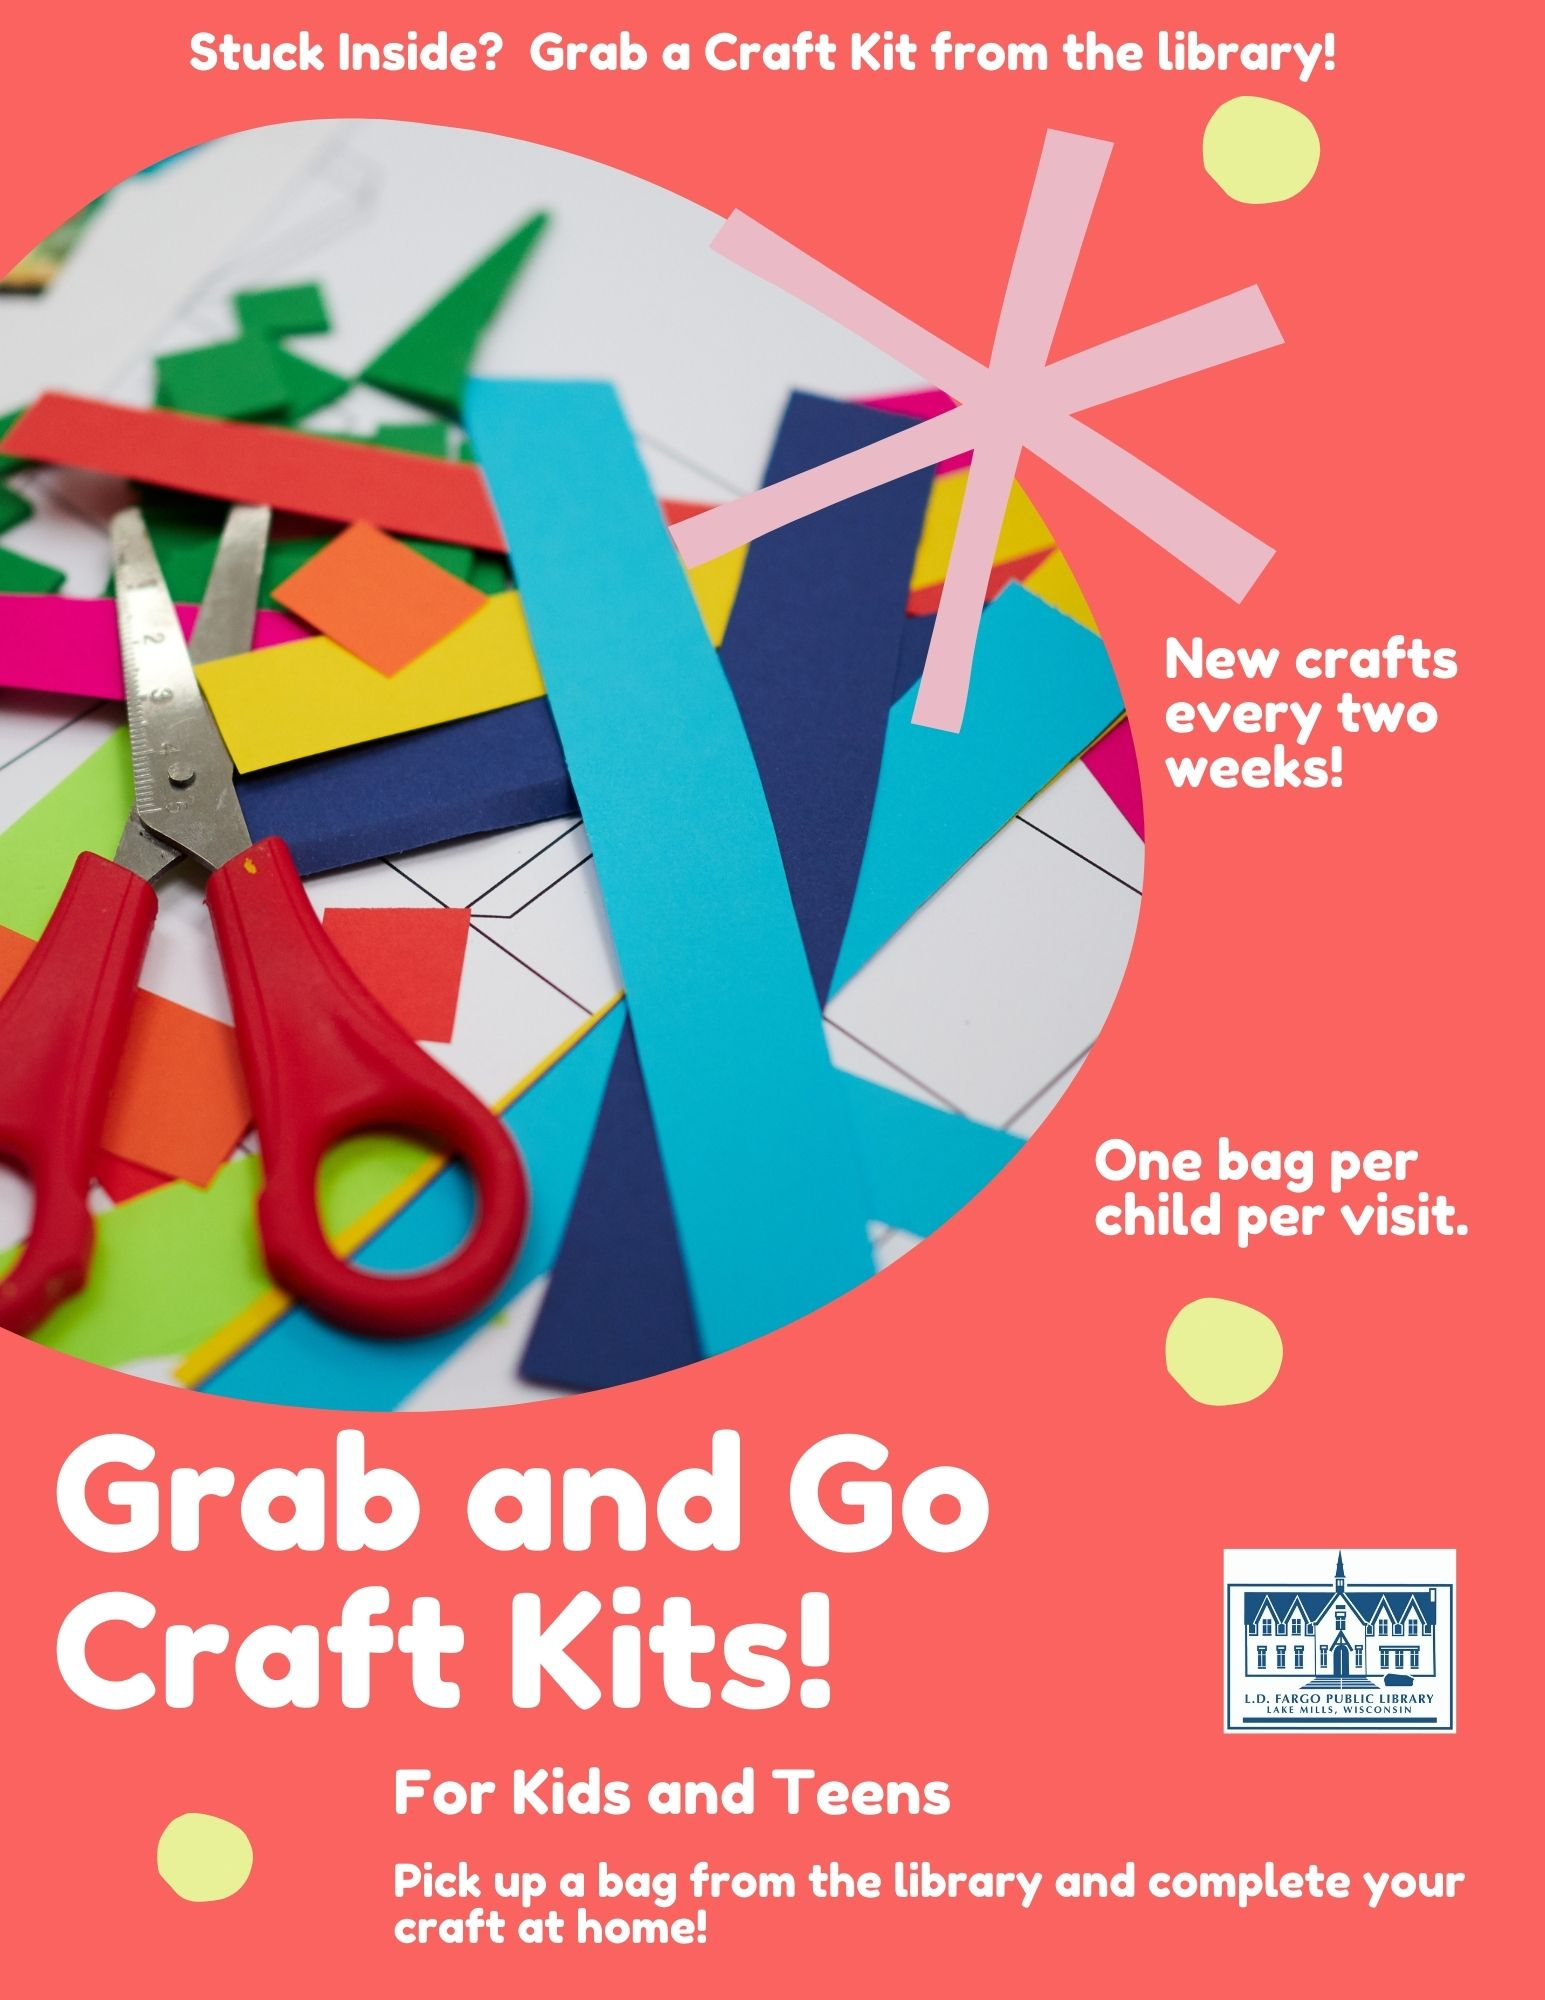 Grab and Go Craft Kits for Kids and Teens. Pick up a bag from the library and create your craft at home.